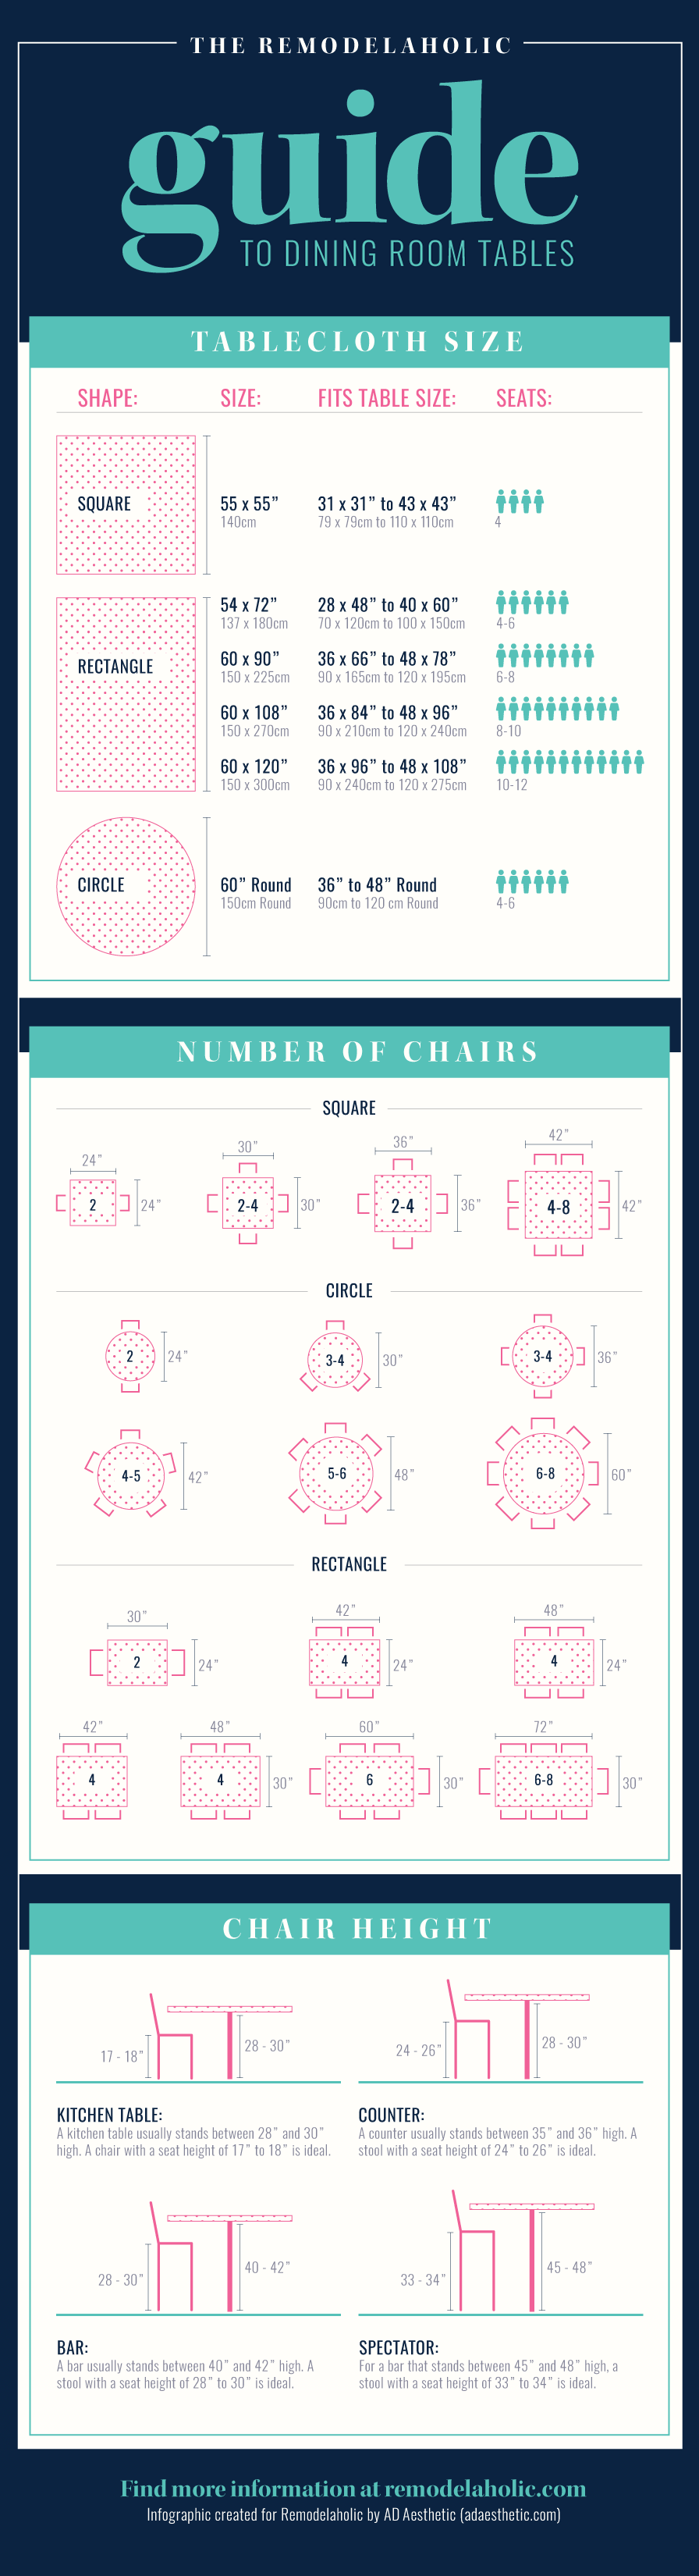 Dining Table Height Simple Modern Height Table Natural X  : The Remodelaholic Guide to Dining Table Seating Tablecloth Size and Chair Height Remodelaholic 1 from buildhouse.biz size 896 x 3300 png 534kB